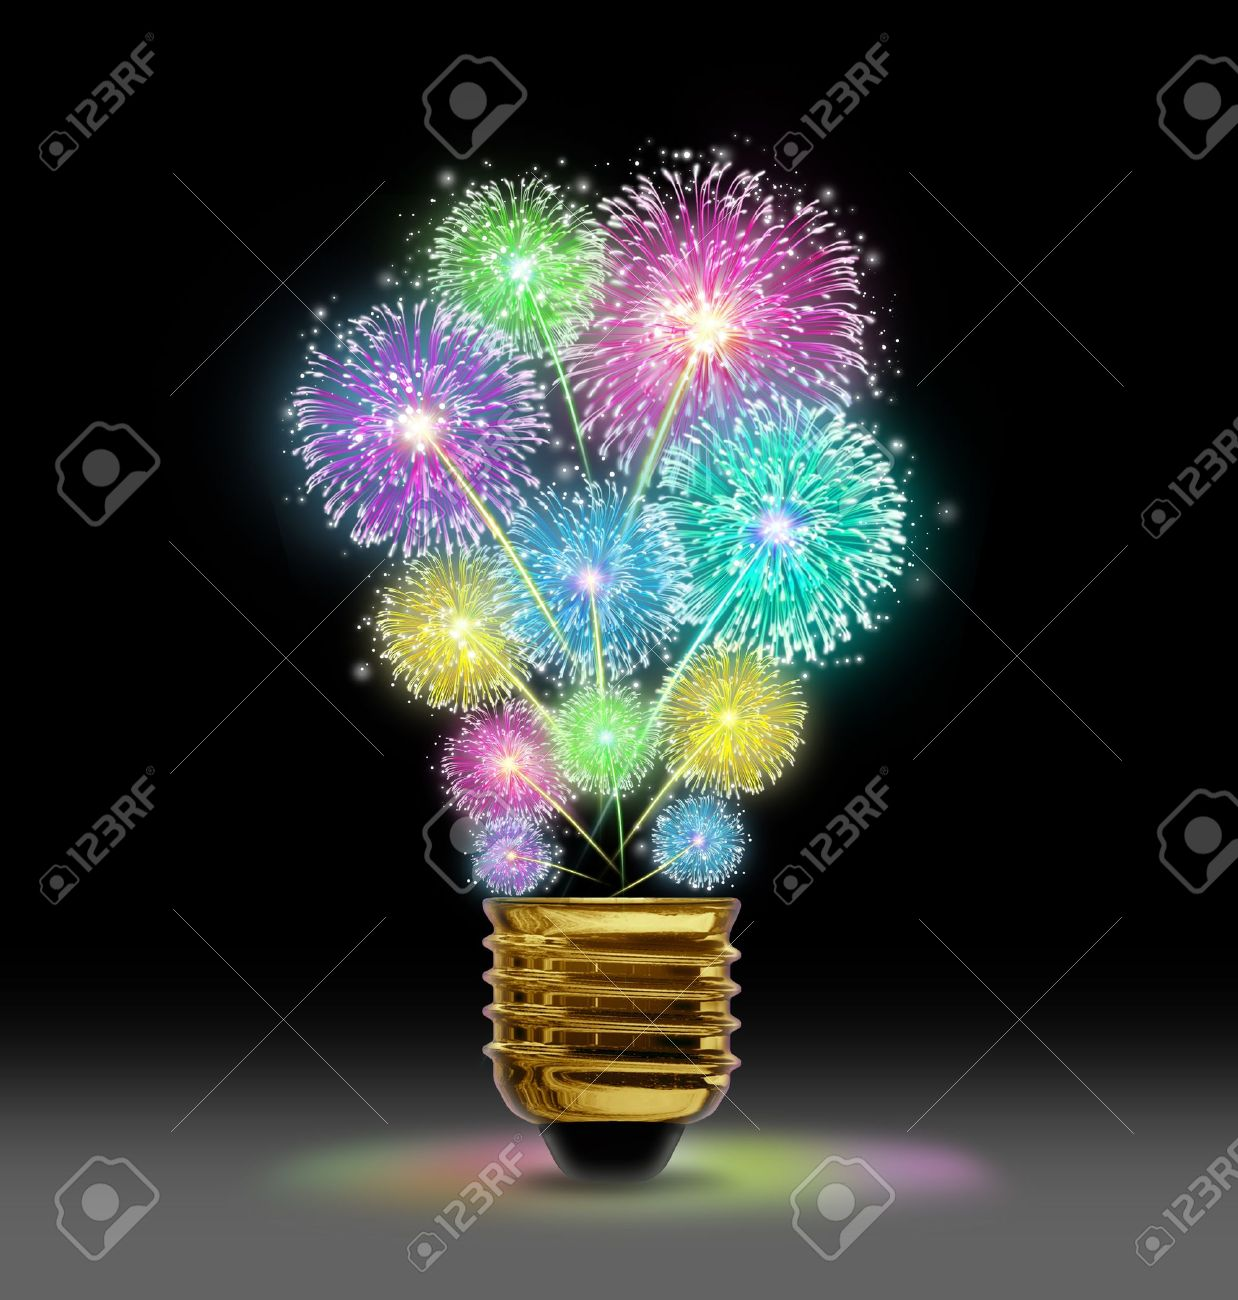 Creative Explosion as a fireworks display celebration represented by exploding sparks of color in the shape of a light bulb on black as a concept of innovation and creative power Stock Photo - 18122528